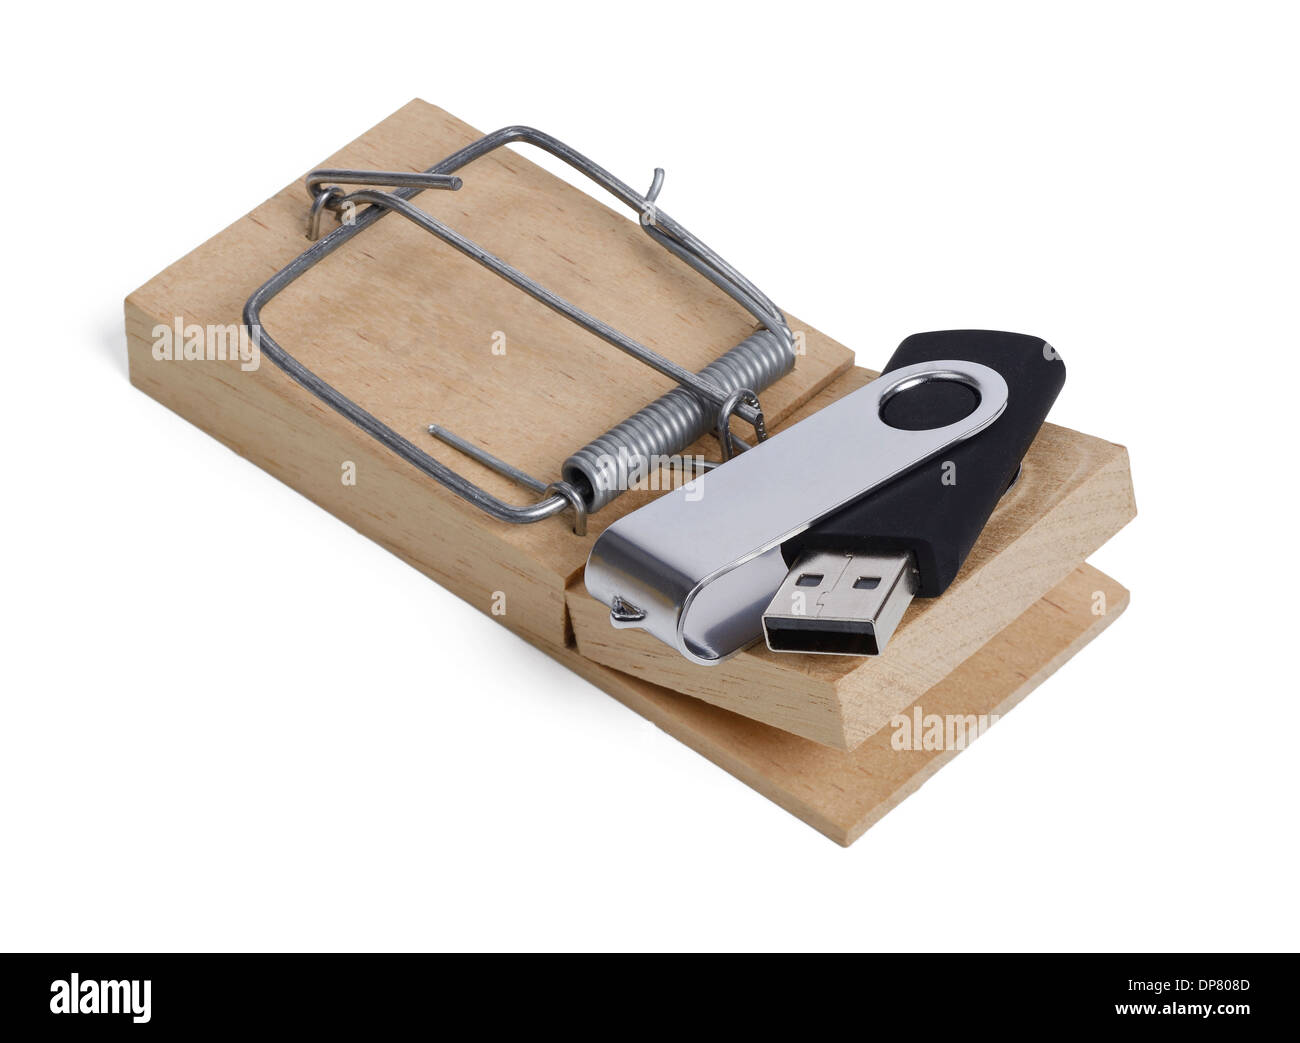 USB flash drive used as bait in a mouse trap - Stock Image